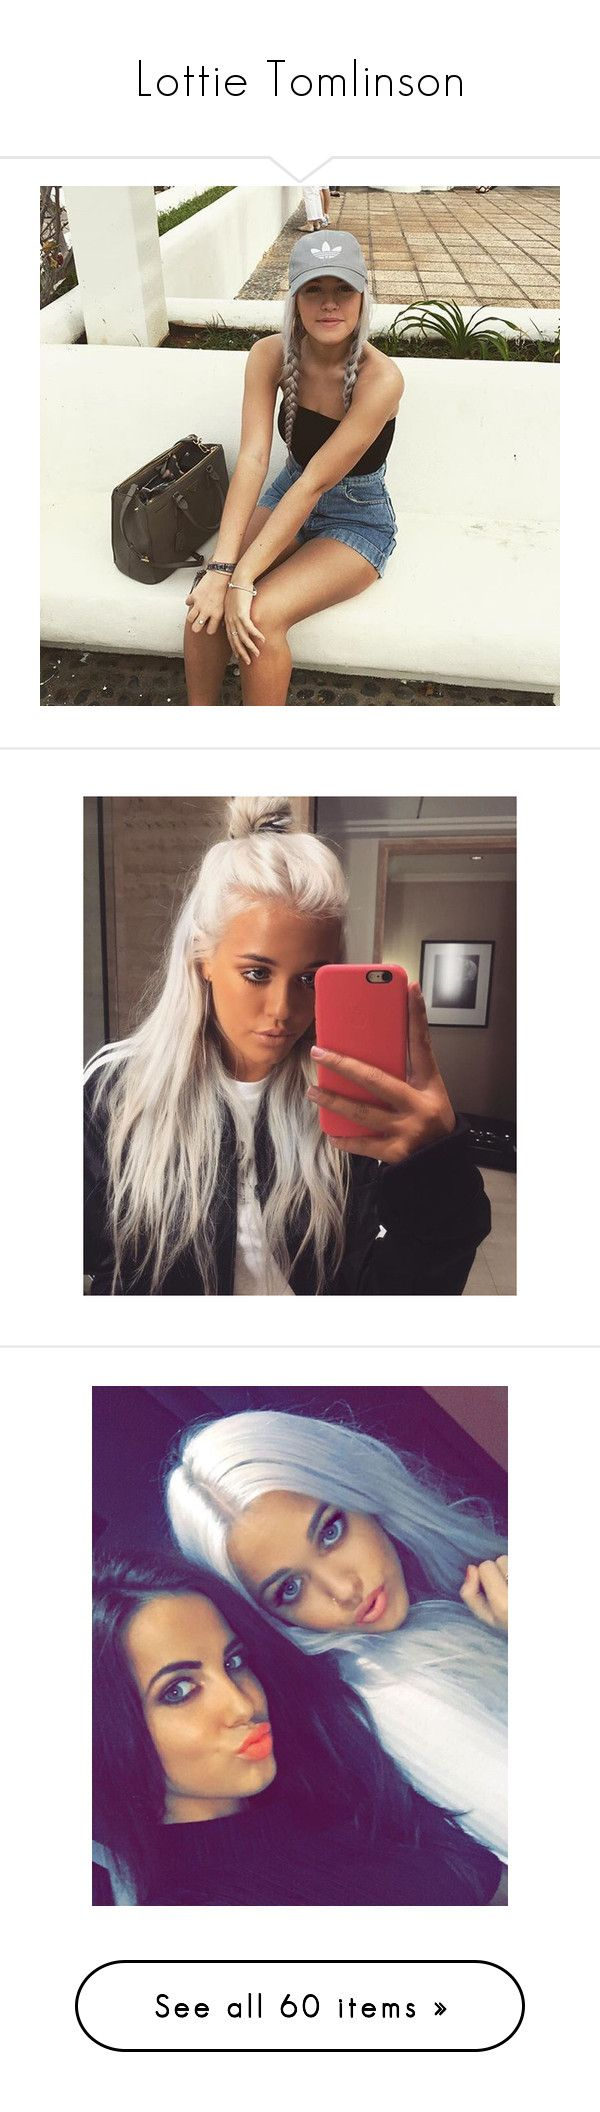 """""""Lottie Tomlinson"""" by croonessii ❤ liked on Polyvore featuring one direction, photo, pics, pictures, lou & lux, 1d family, lou teasdale, sophia, people and fotos"""